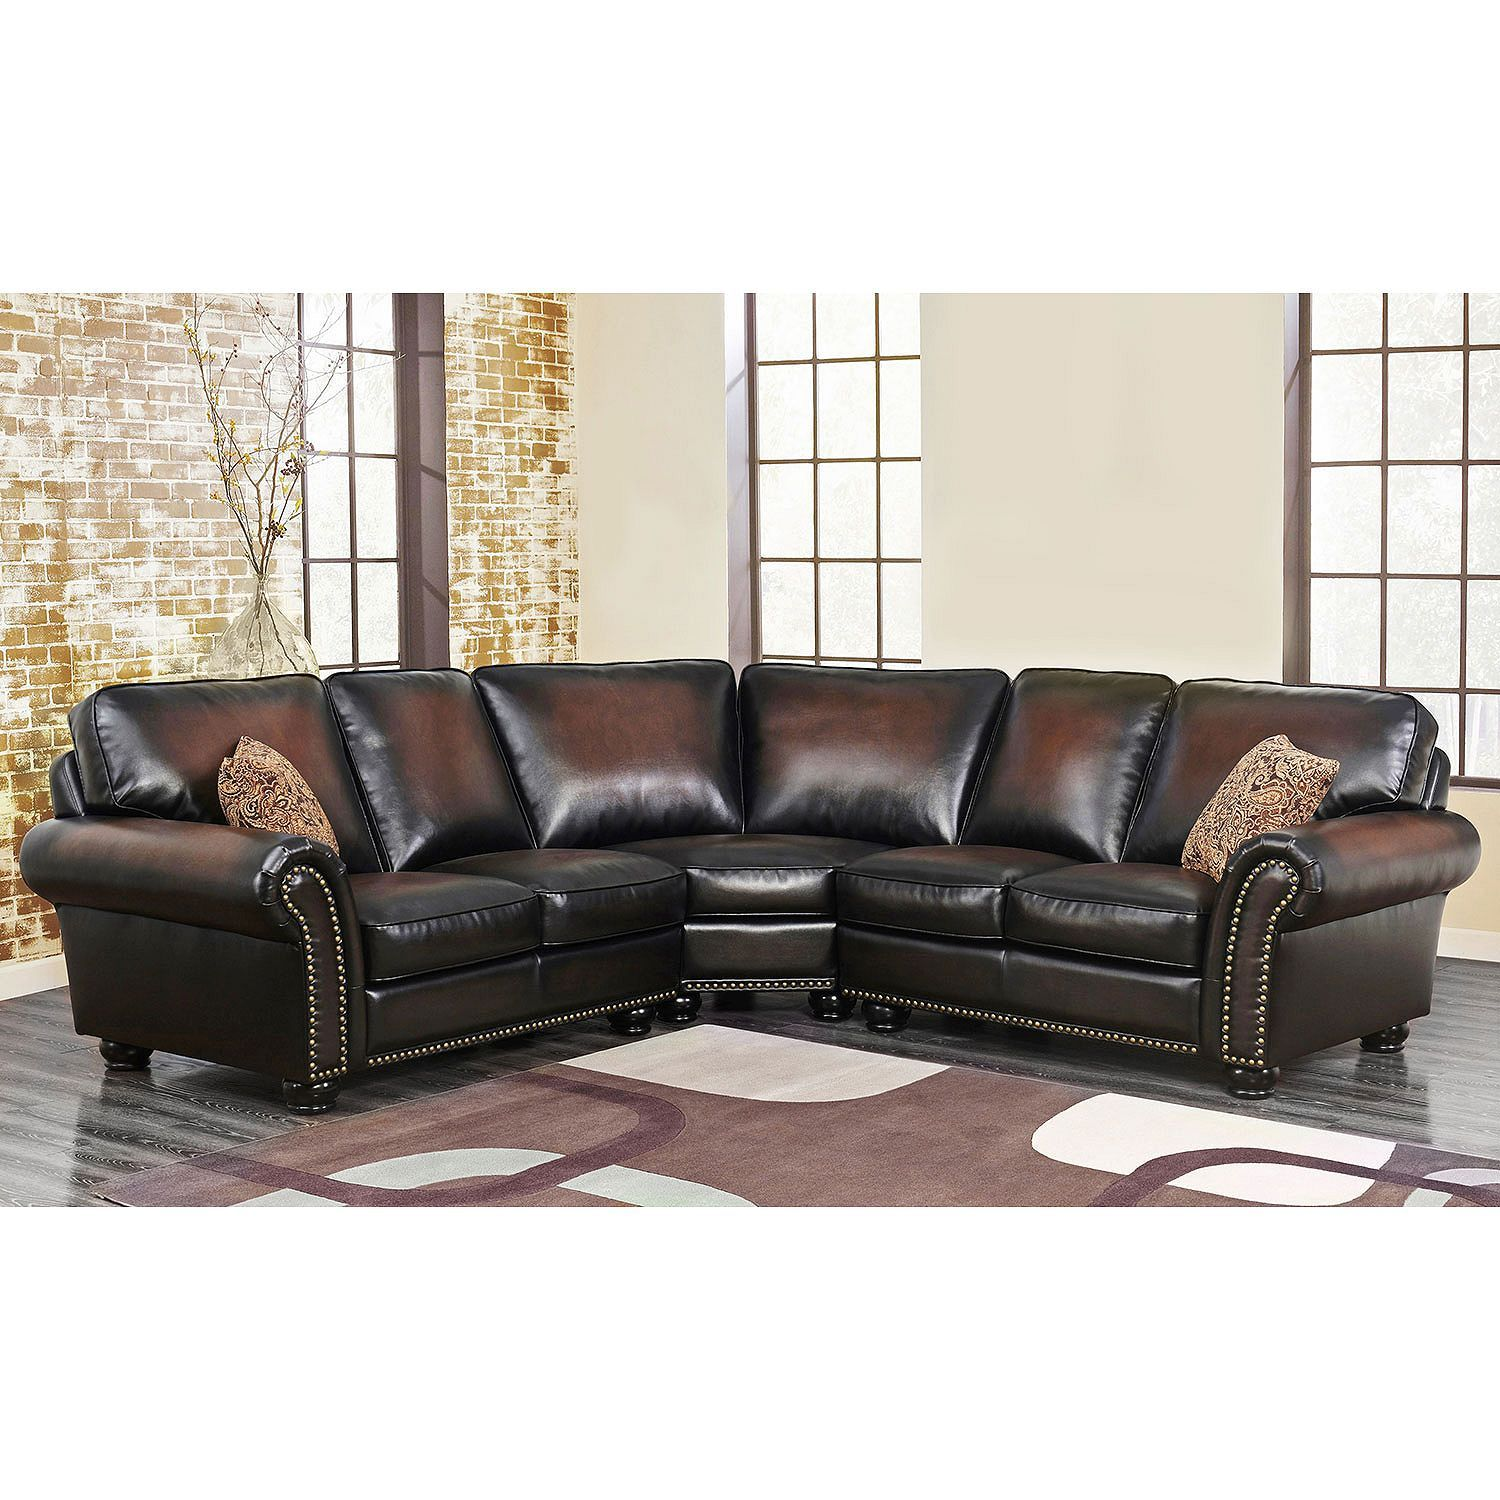 Melrose Leather 3 Piece Sectional Sam 39 S Club Leather Sectional Ottoman In Living Room Leather Sectional Sofa